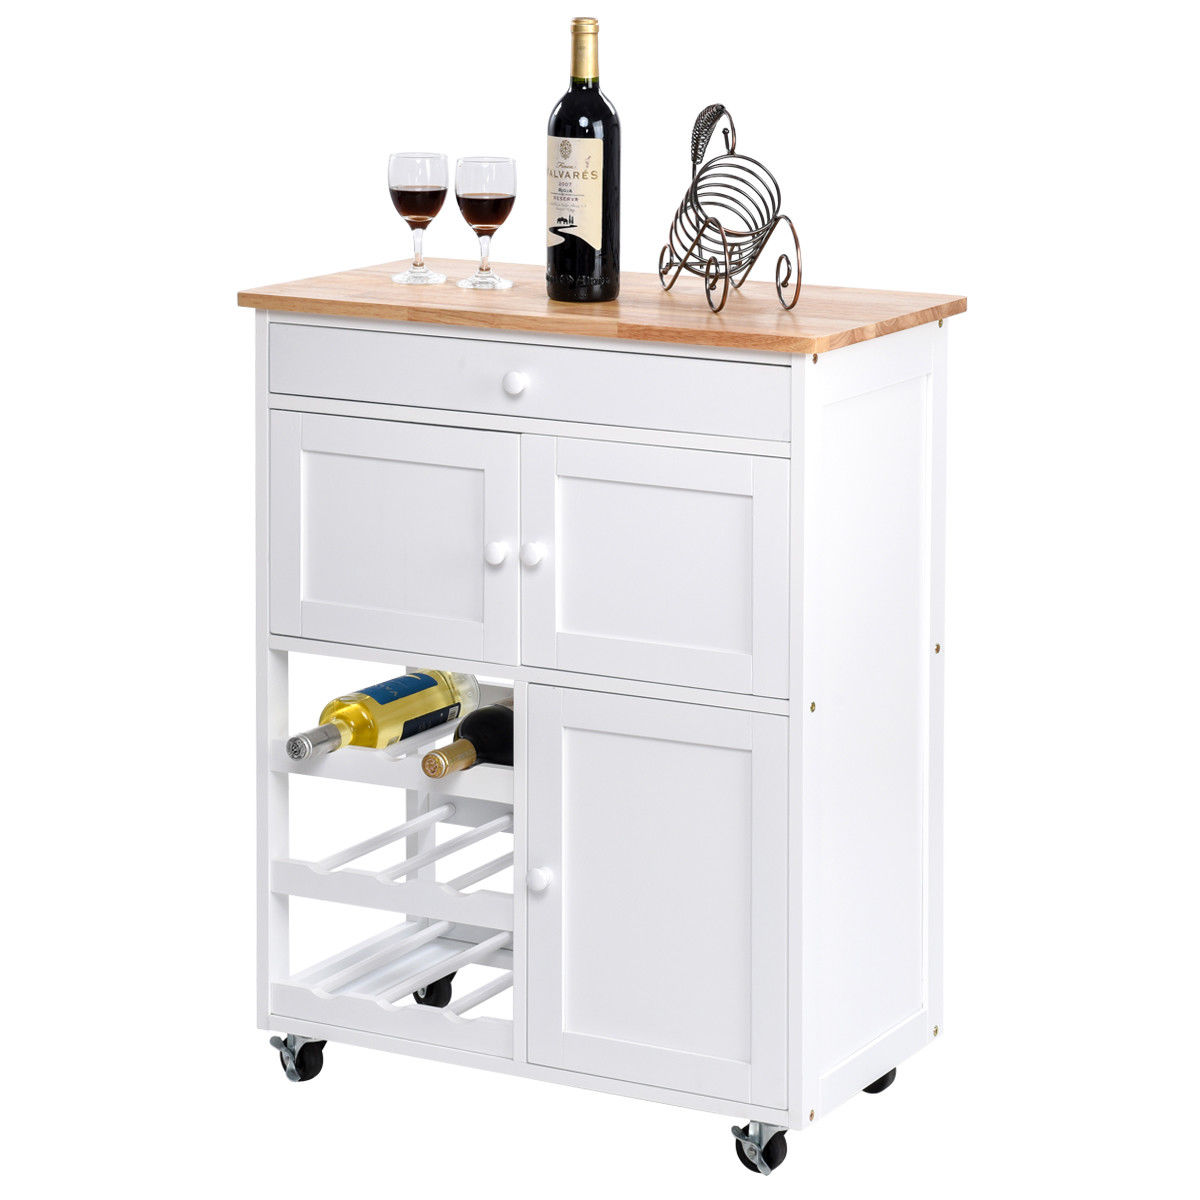 Gymax modern rolling kitchen cart trolley island storage cabinet w drawerwine rack